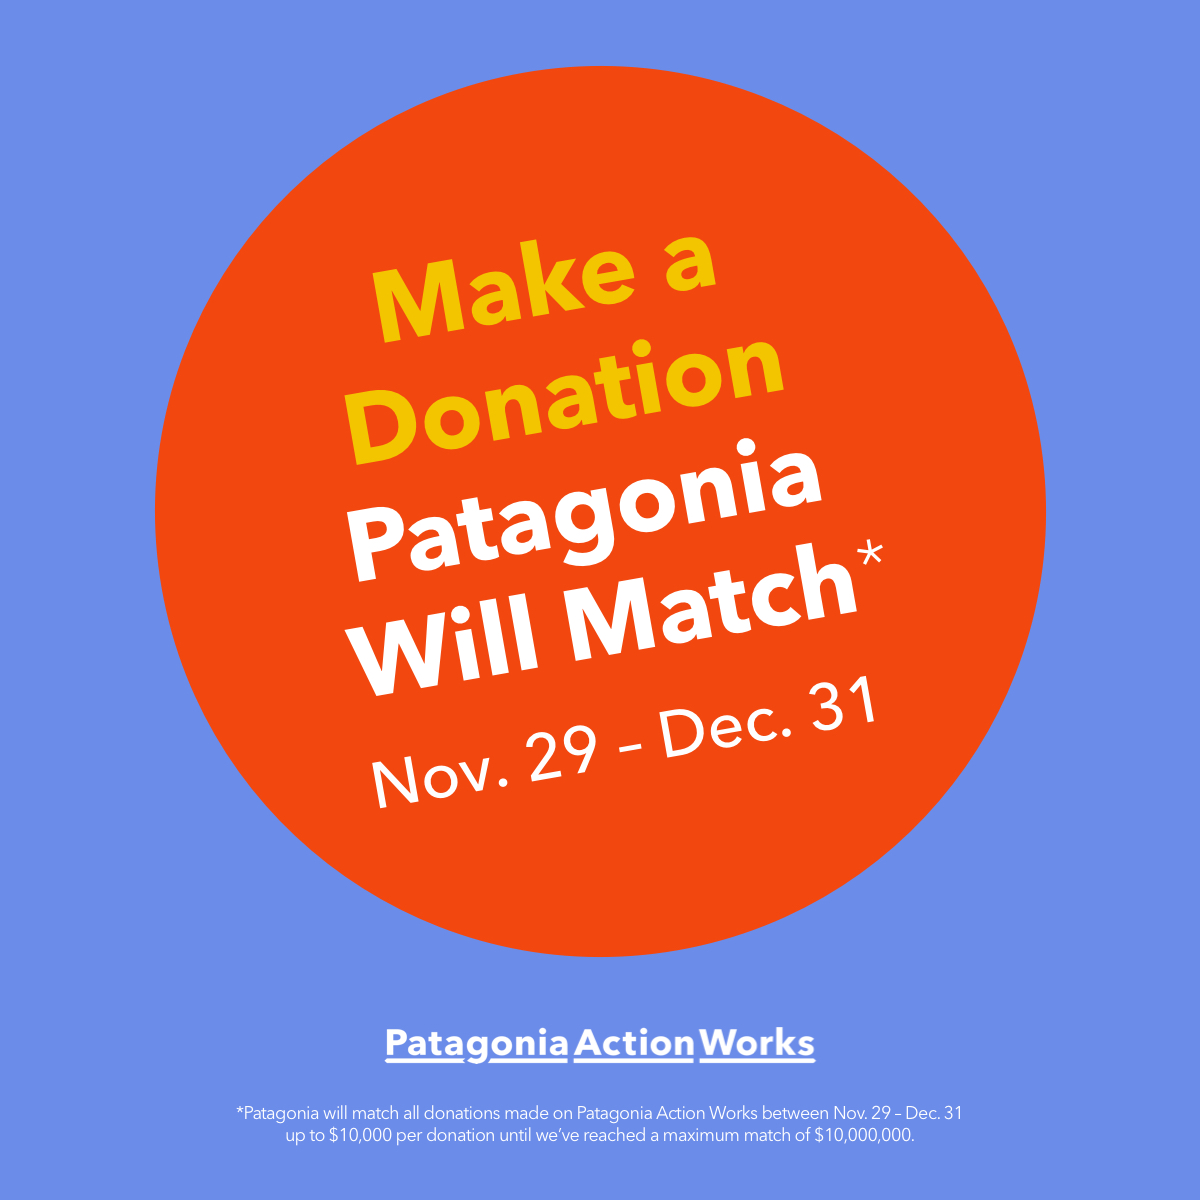 Patagonia will match your gift this season! Donate to the Campaign on Patagonia Action Works and @Patagonia will match your gift dollar for dollar (up to $10,000 per donation.) From November 29 to December 31 you can make your gift go further. Donate: patagonia.com/actionworks/gr…